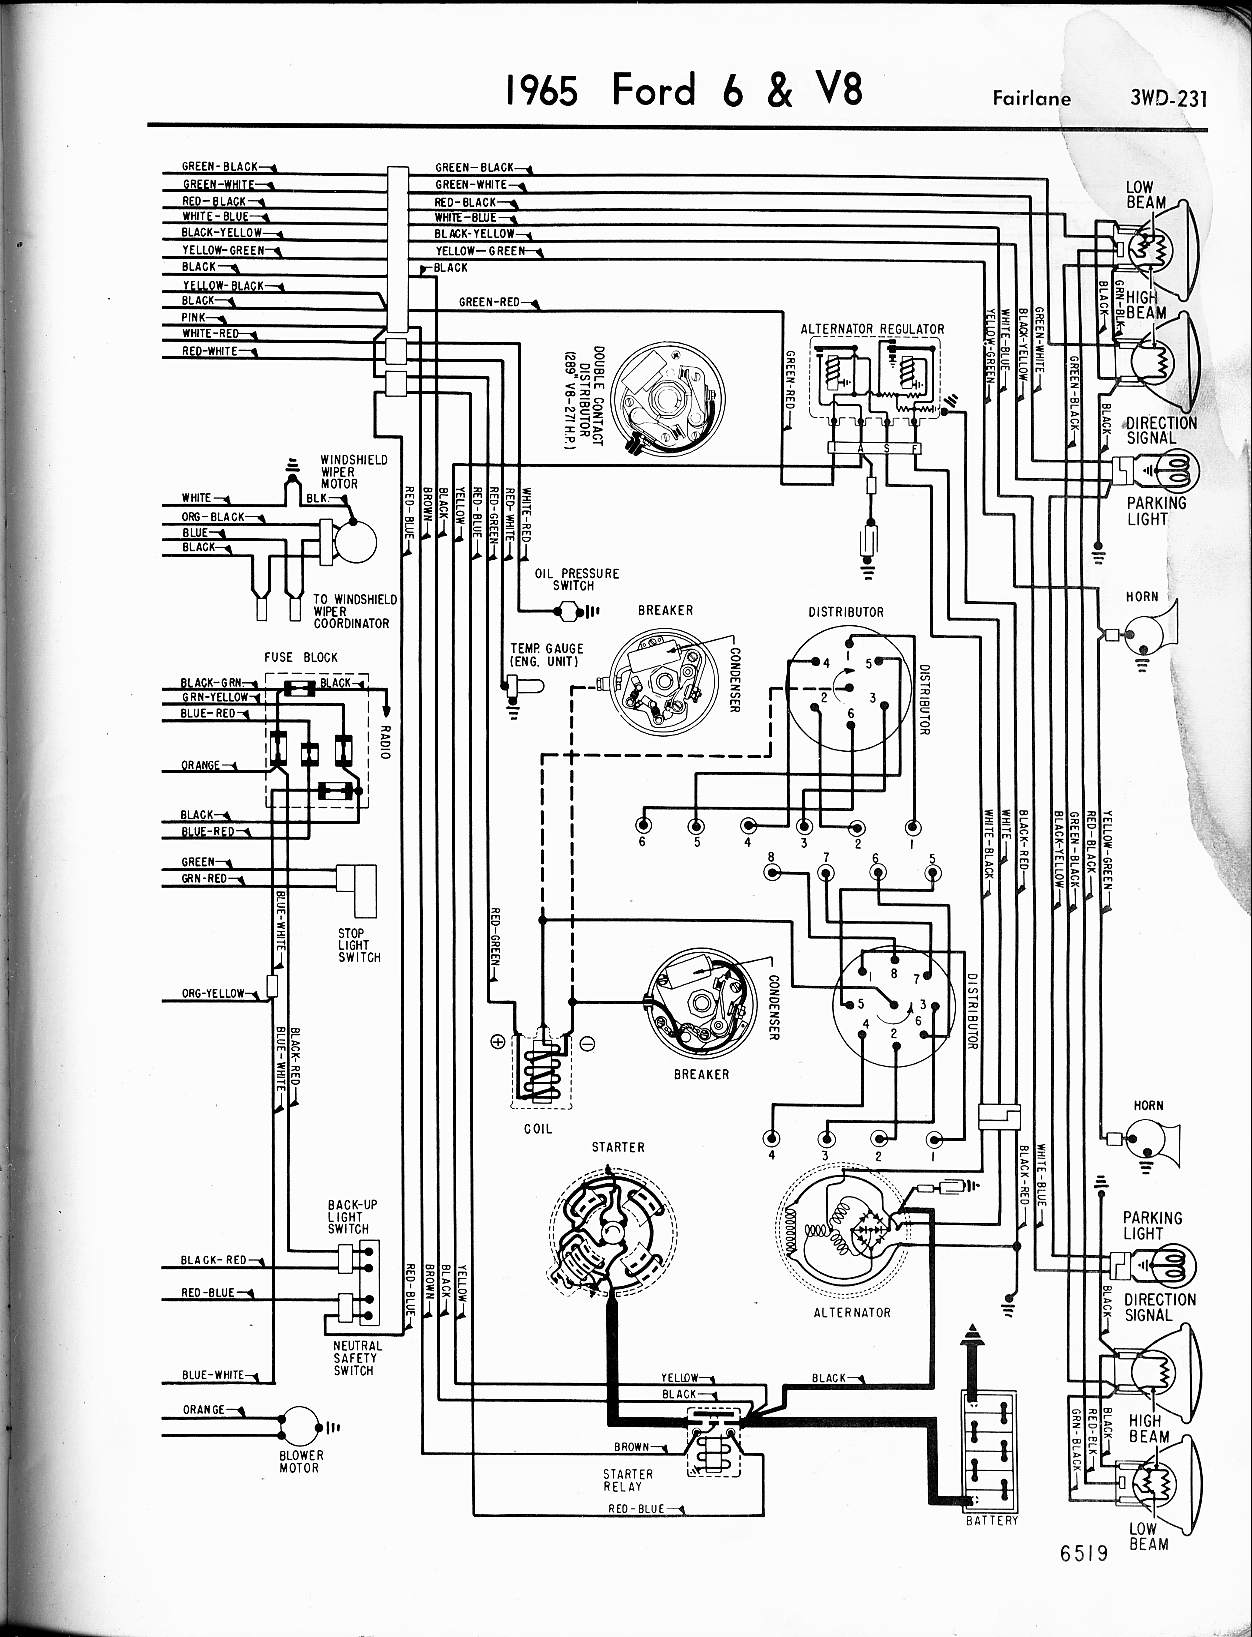 57 65 Ford Wiring Diagrams Truck Ignition 1965 6 V8 Fairlane Right